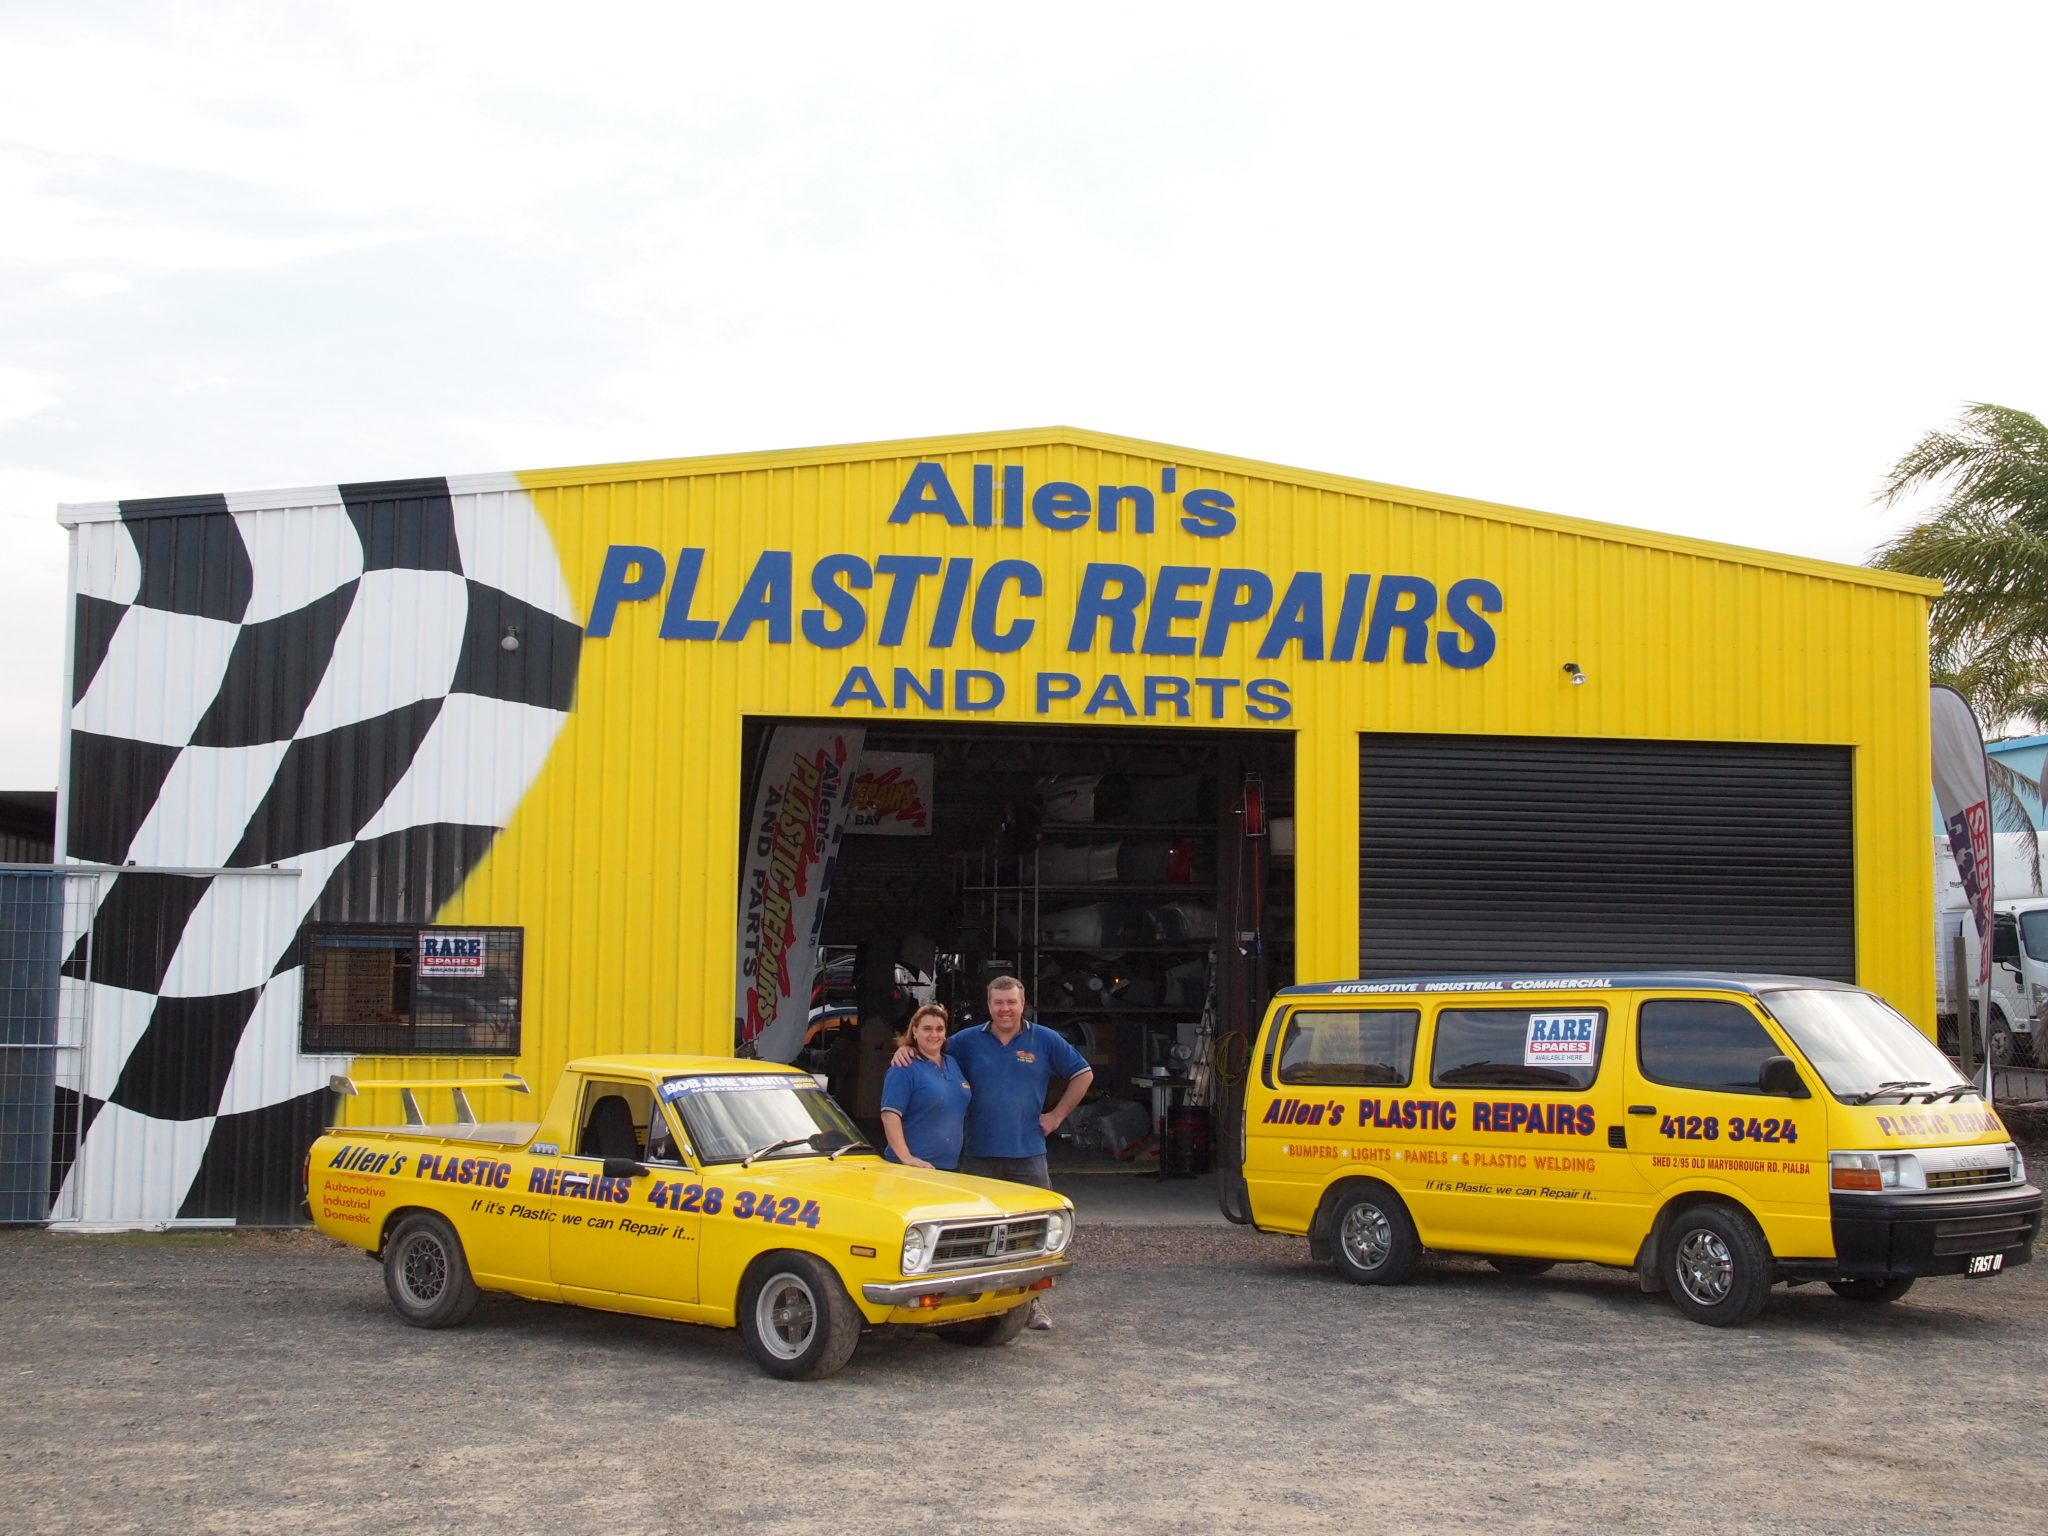 Allen's Plastic Repairs and Parts